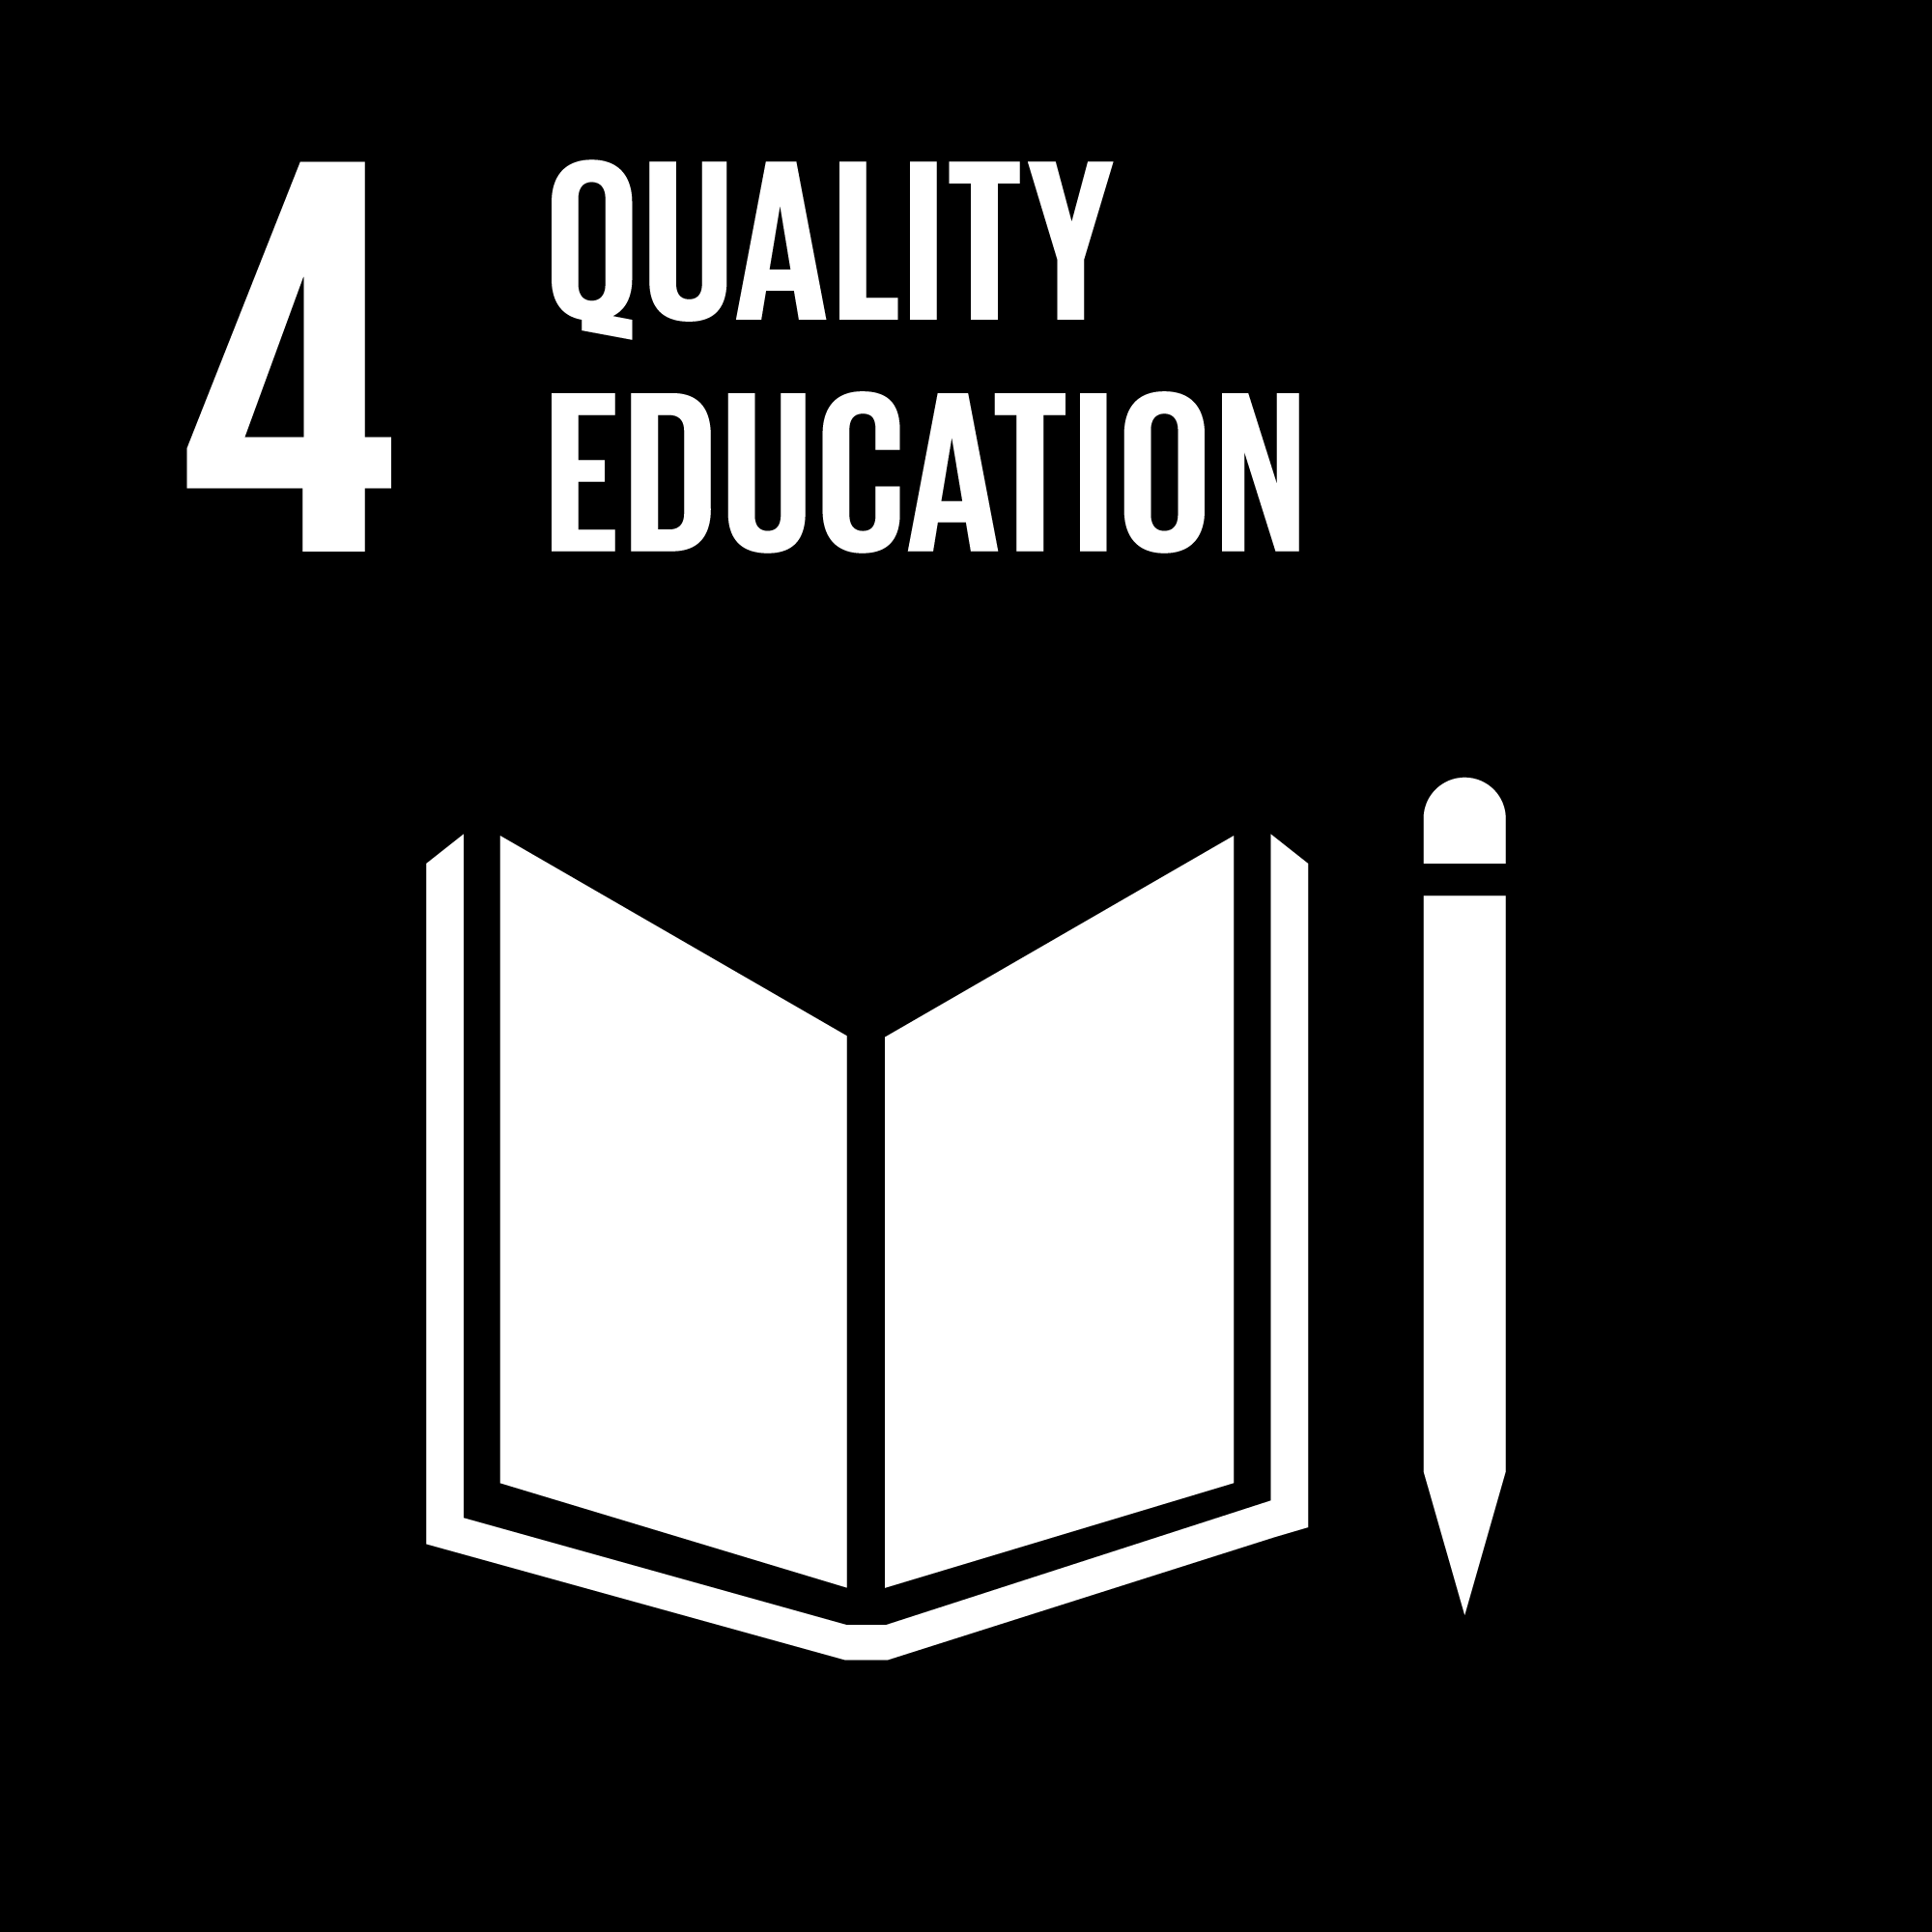 Sustainable Development Goals - 4 - Quality Education